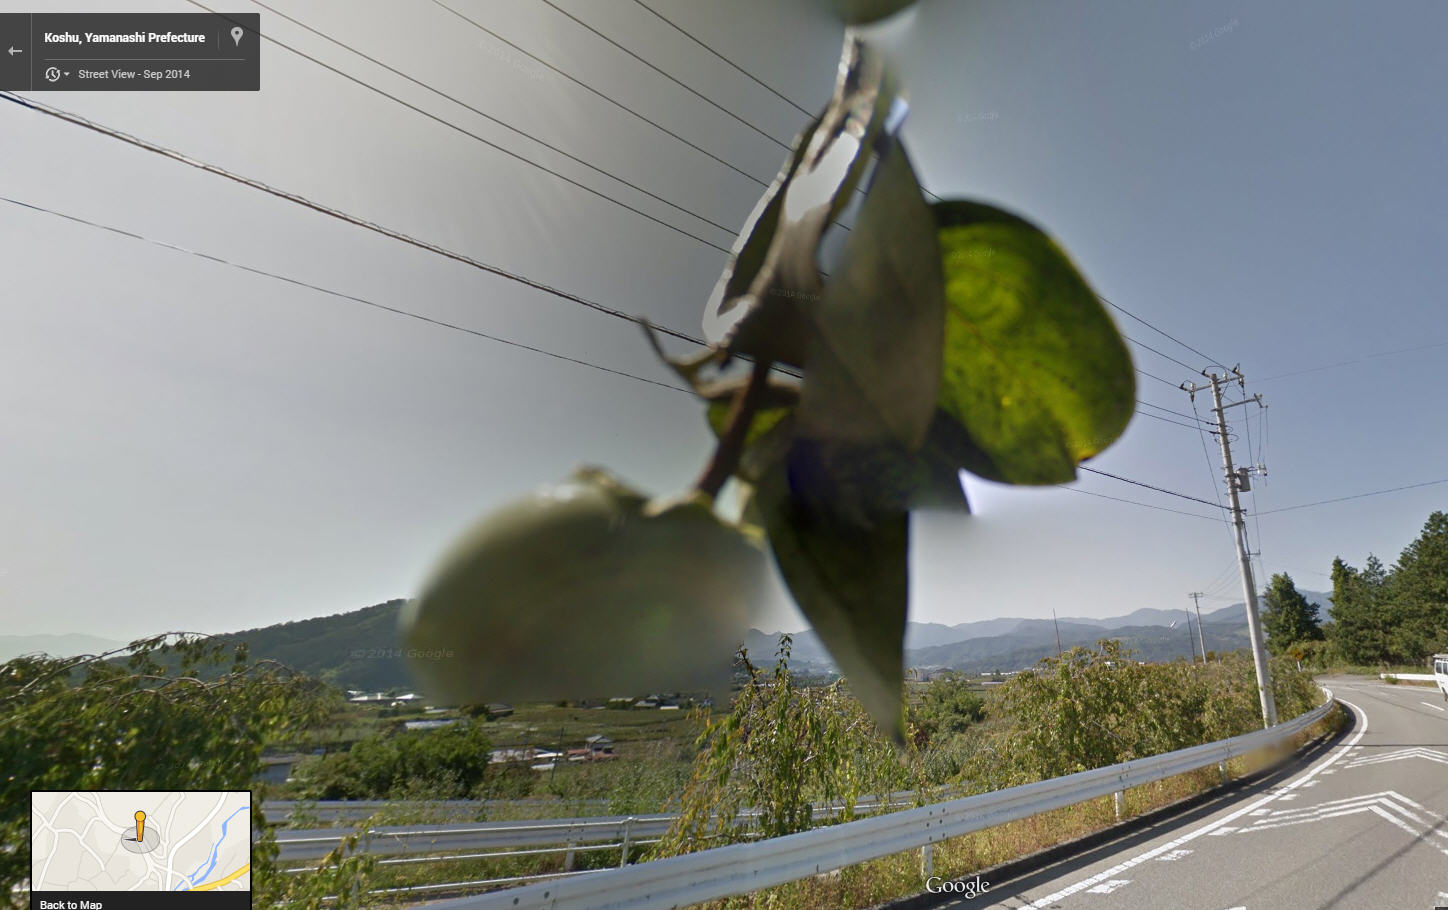 Google Street View on the App Store